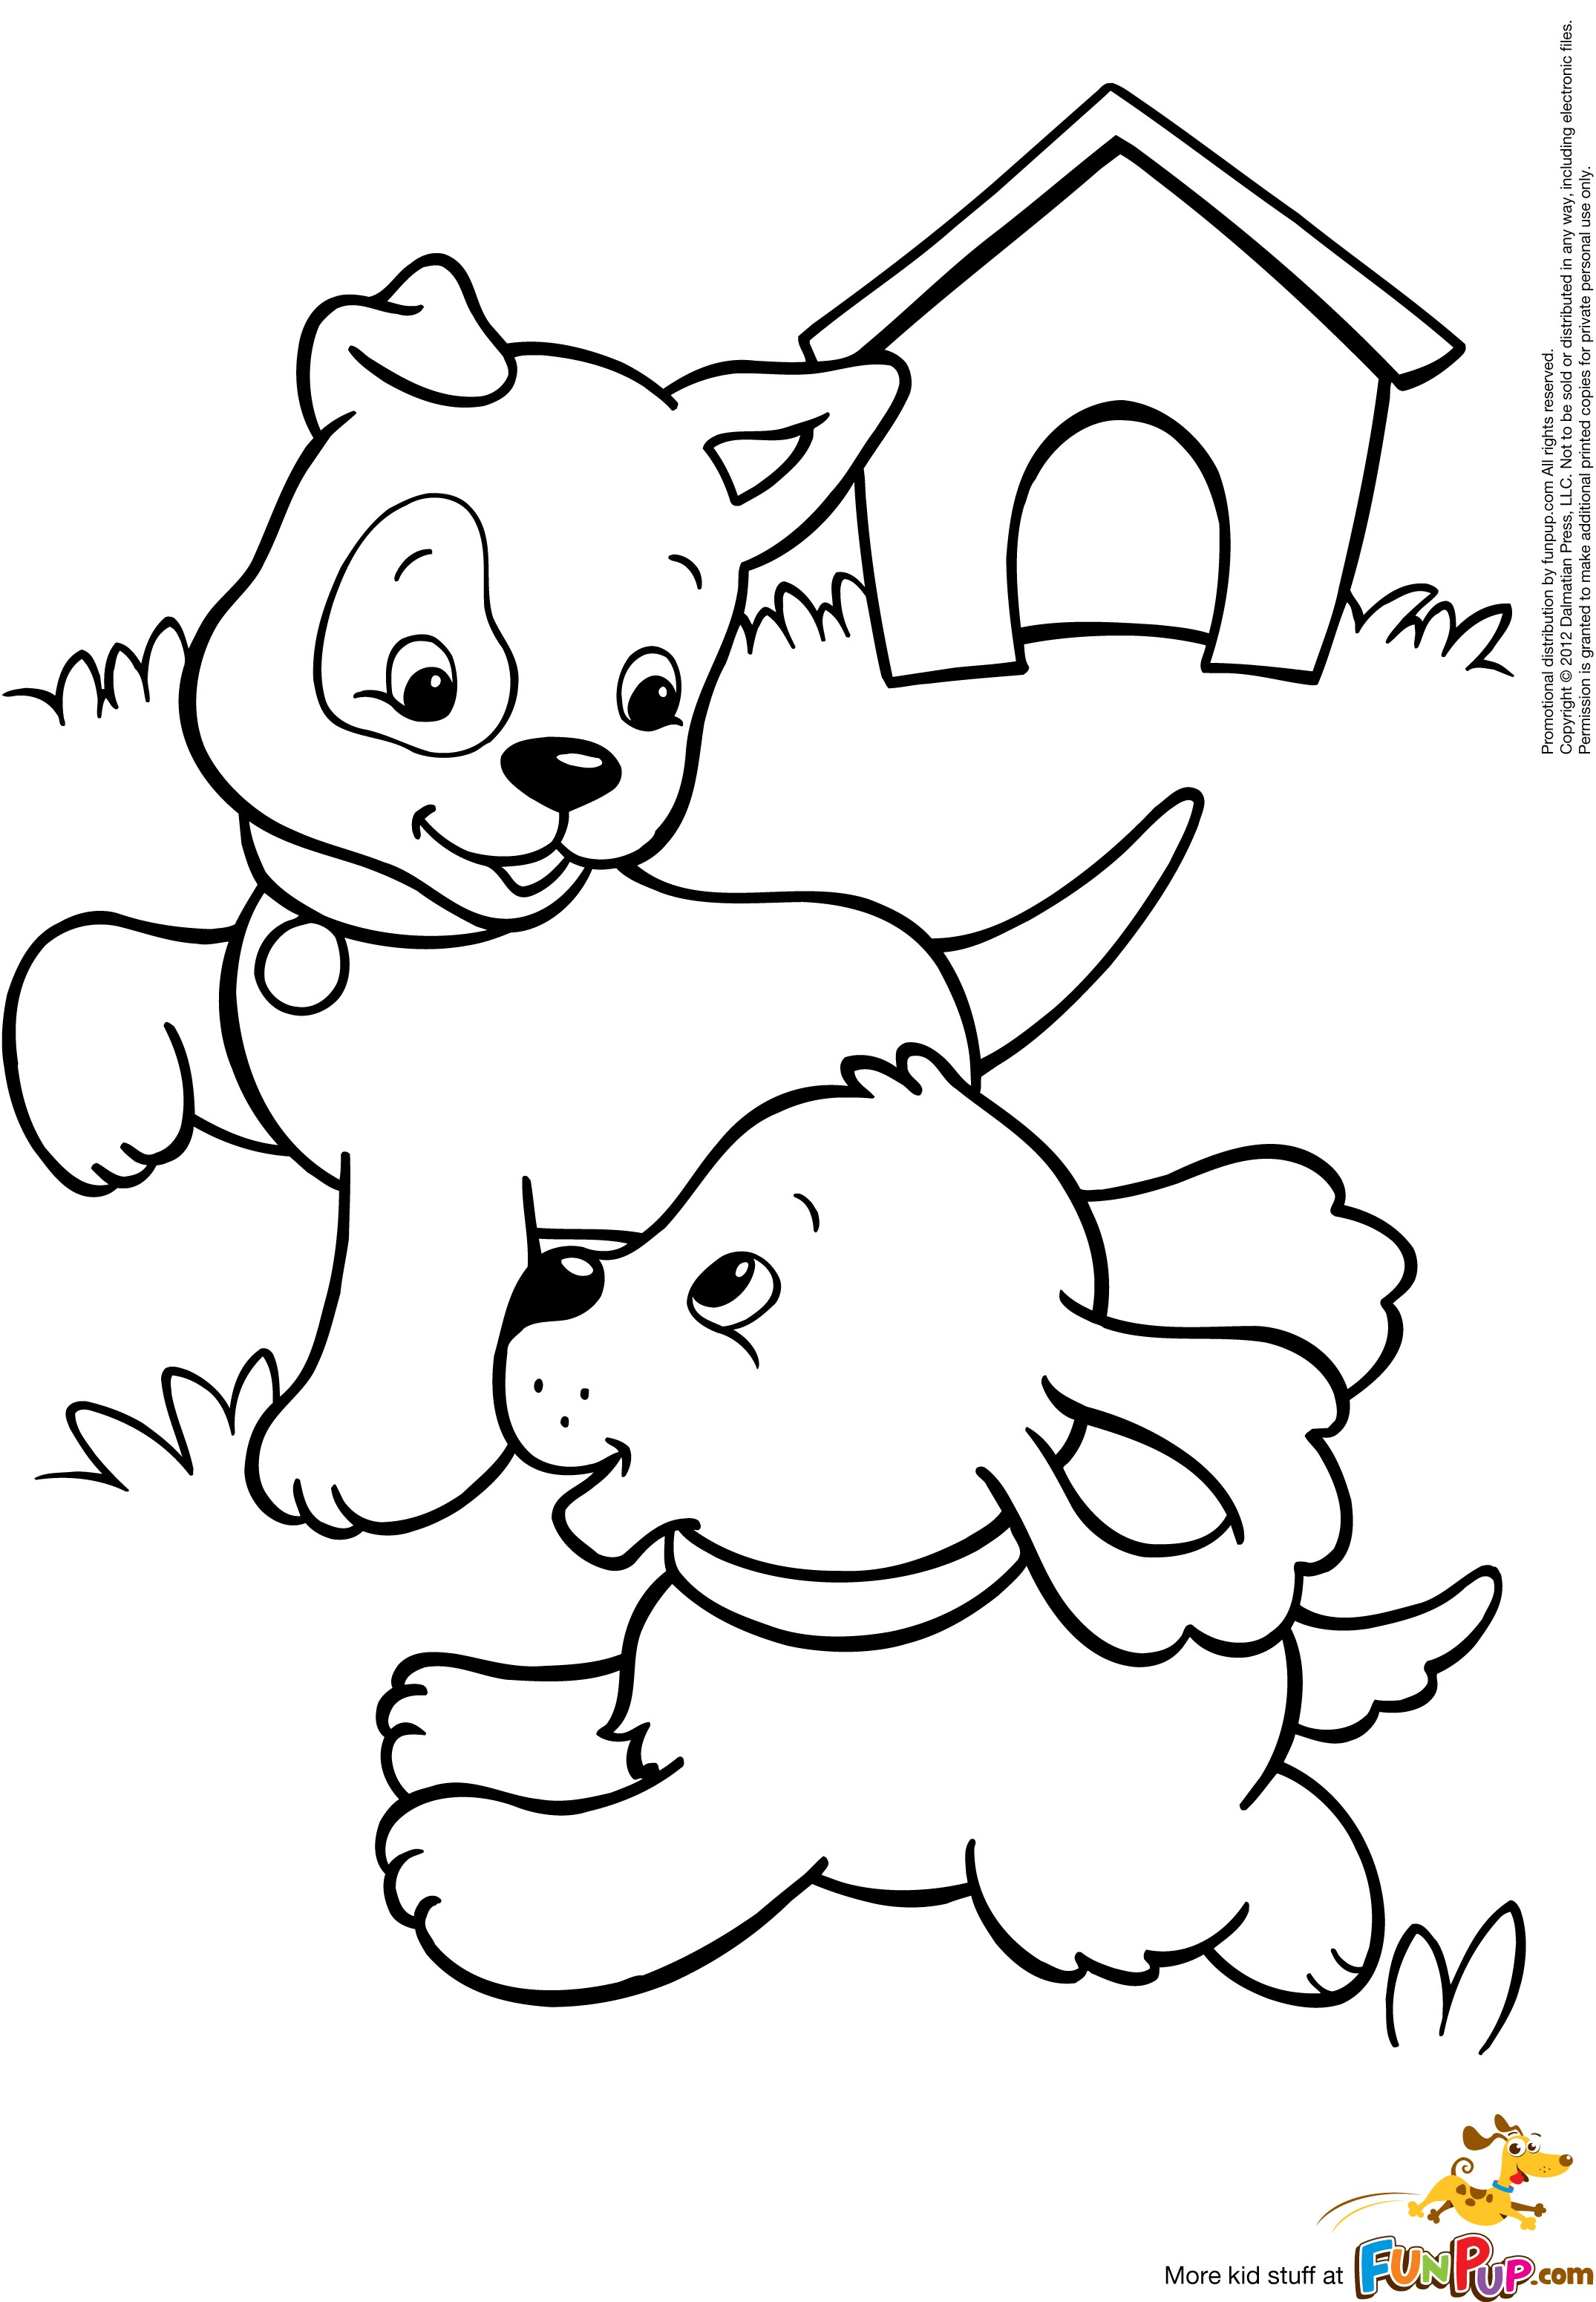 dogs coloring pictures dog free to color for children cute female dog dogs pictures coloring dogs